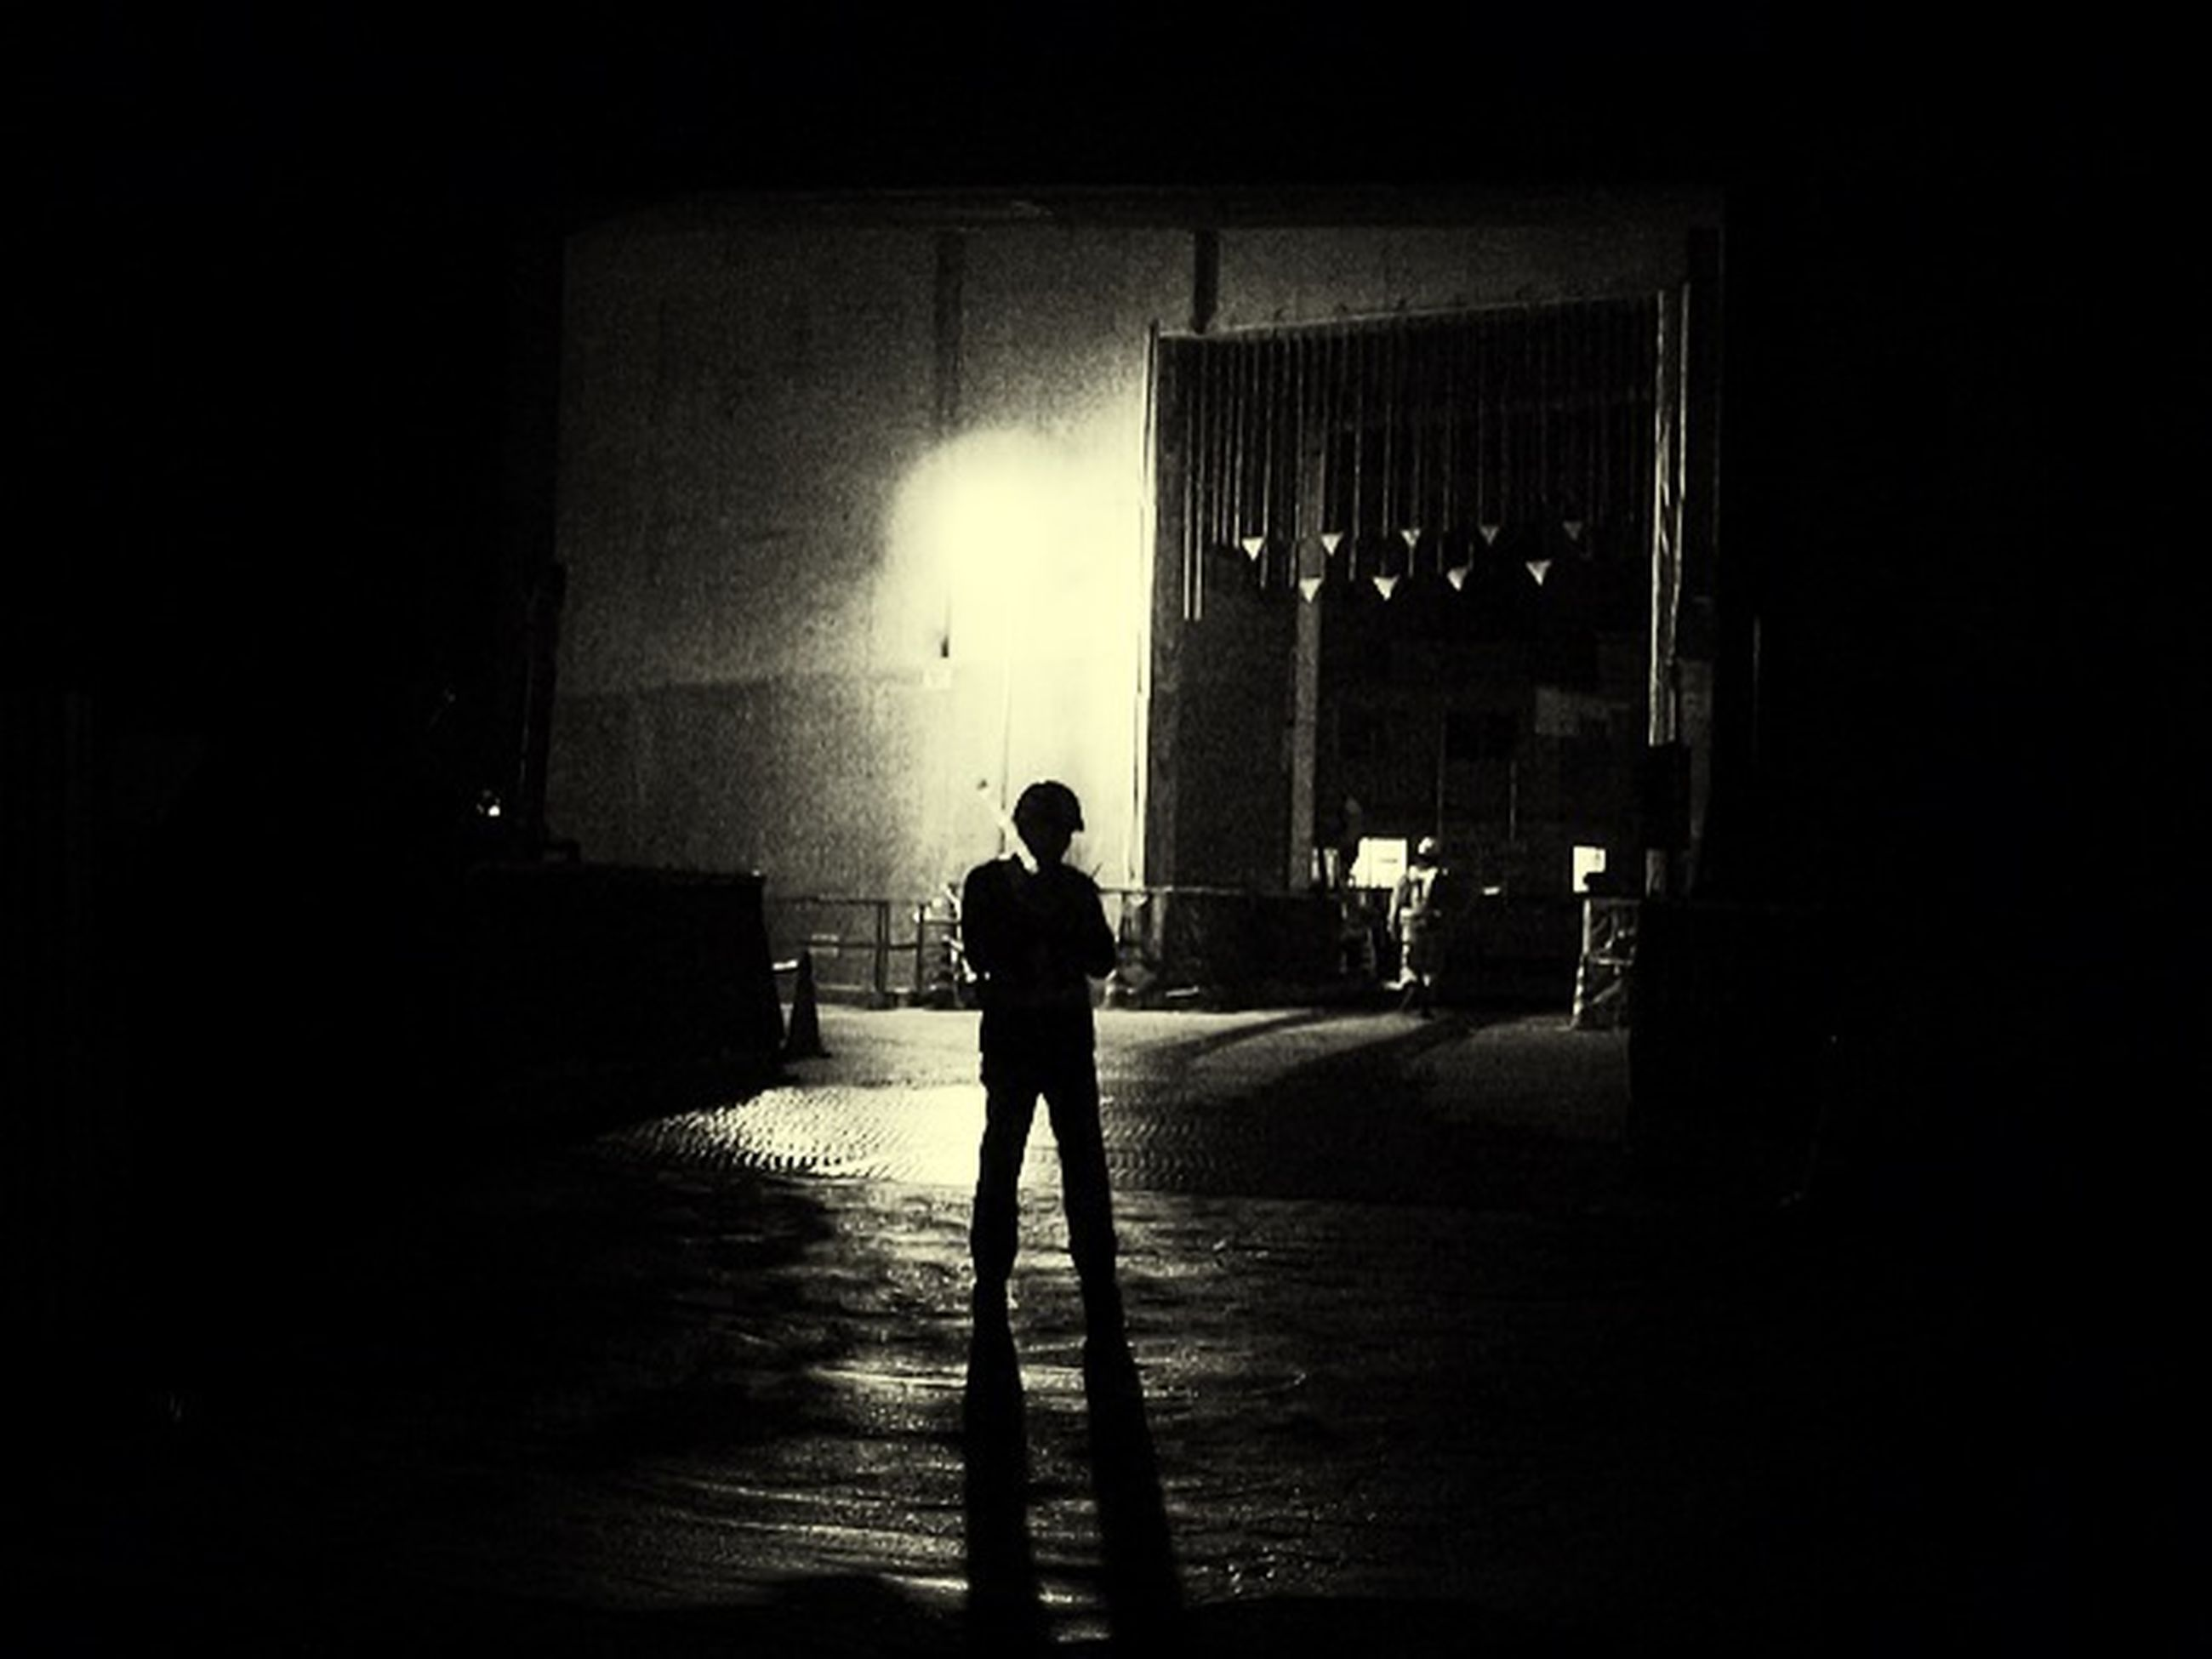 architecture, built structure, full length, building exterior, walking, indoors, lifestyles, silhouette, building, illuminated, rear view, standing, men, wall - building feature, night, leisure activity, sunlight, shadow